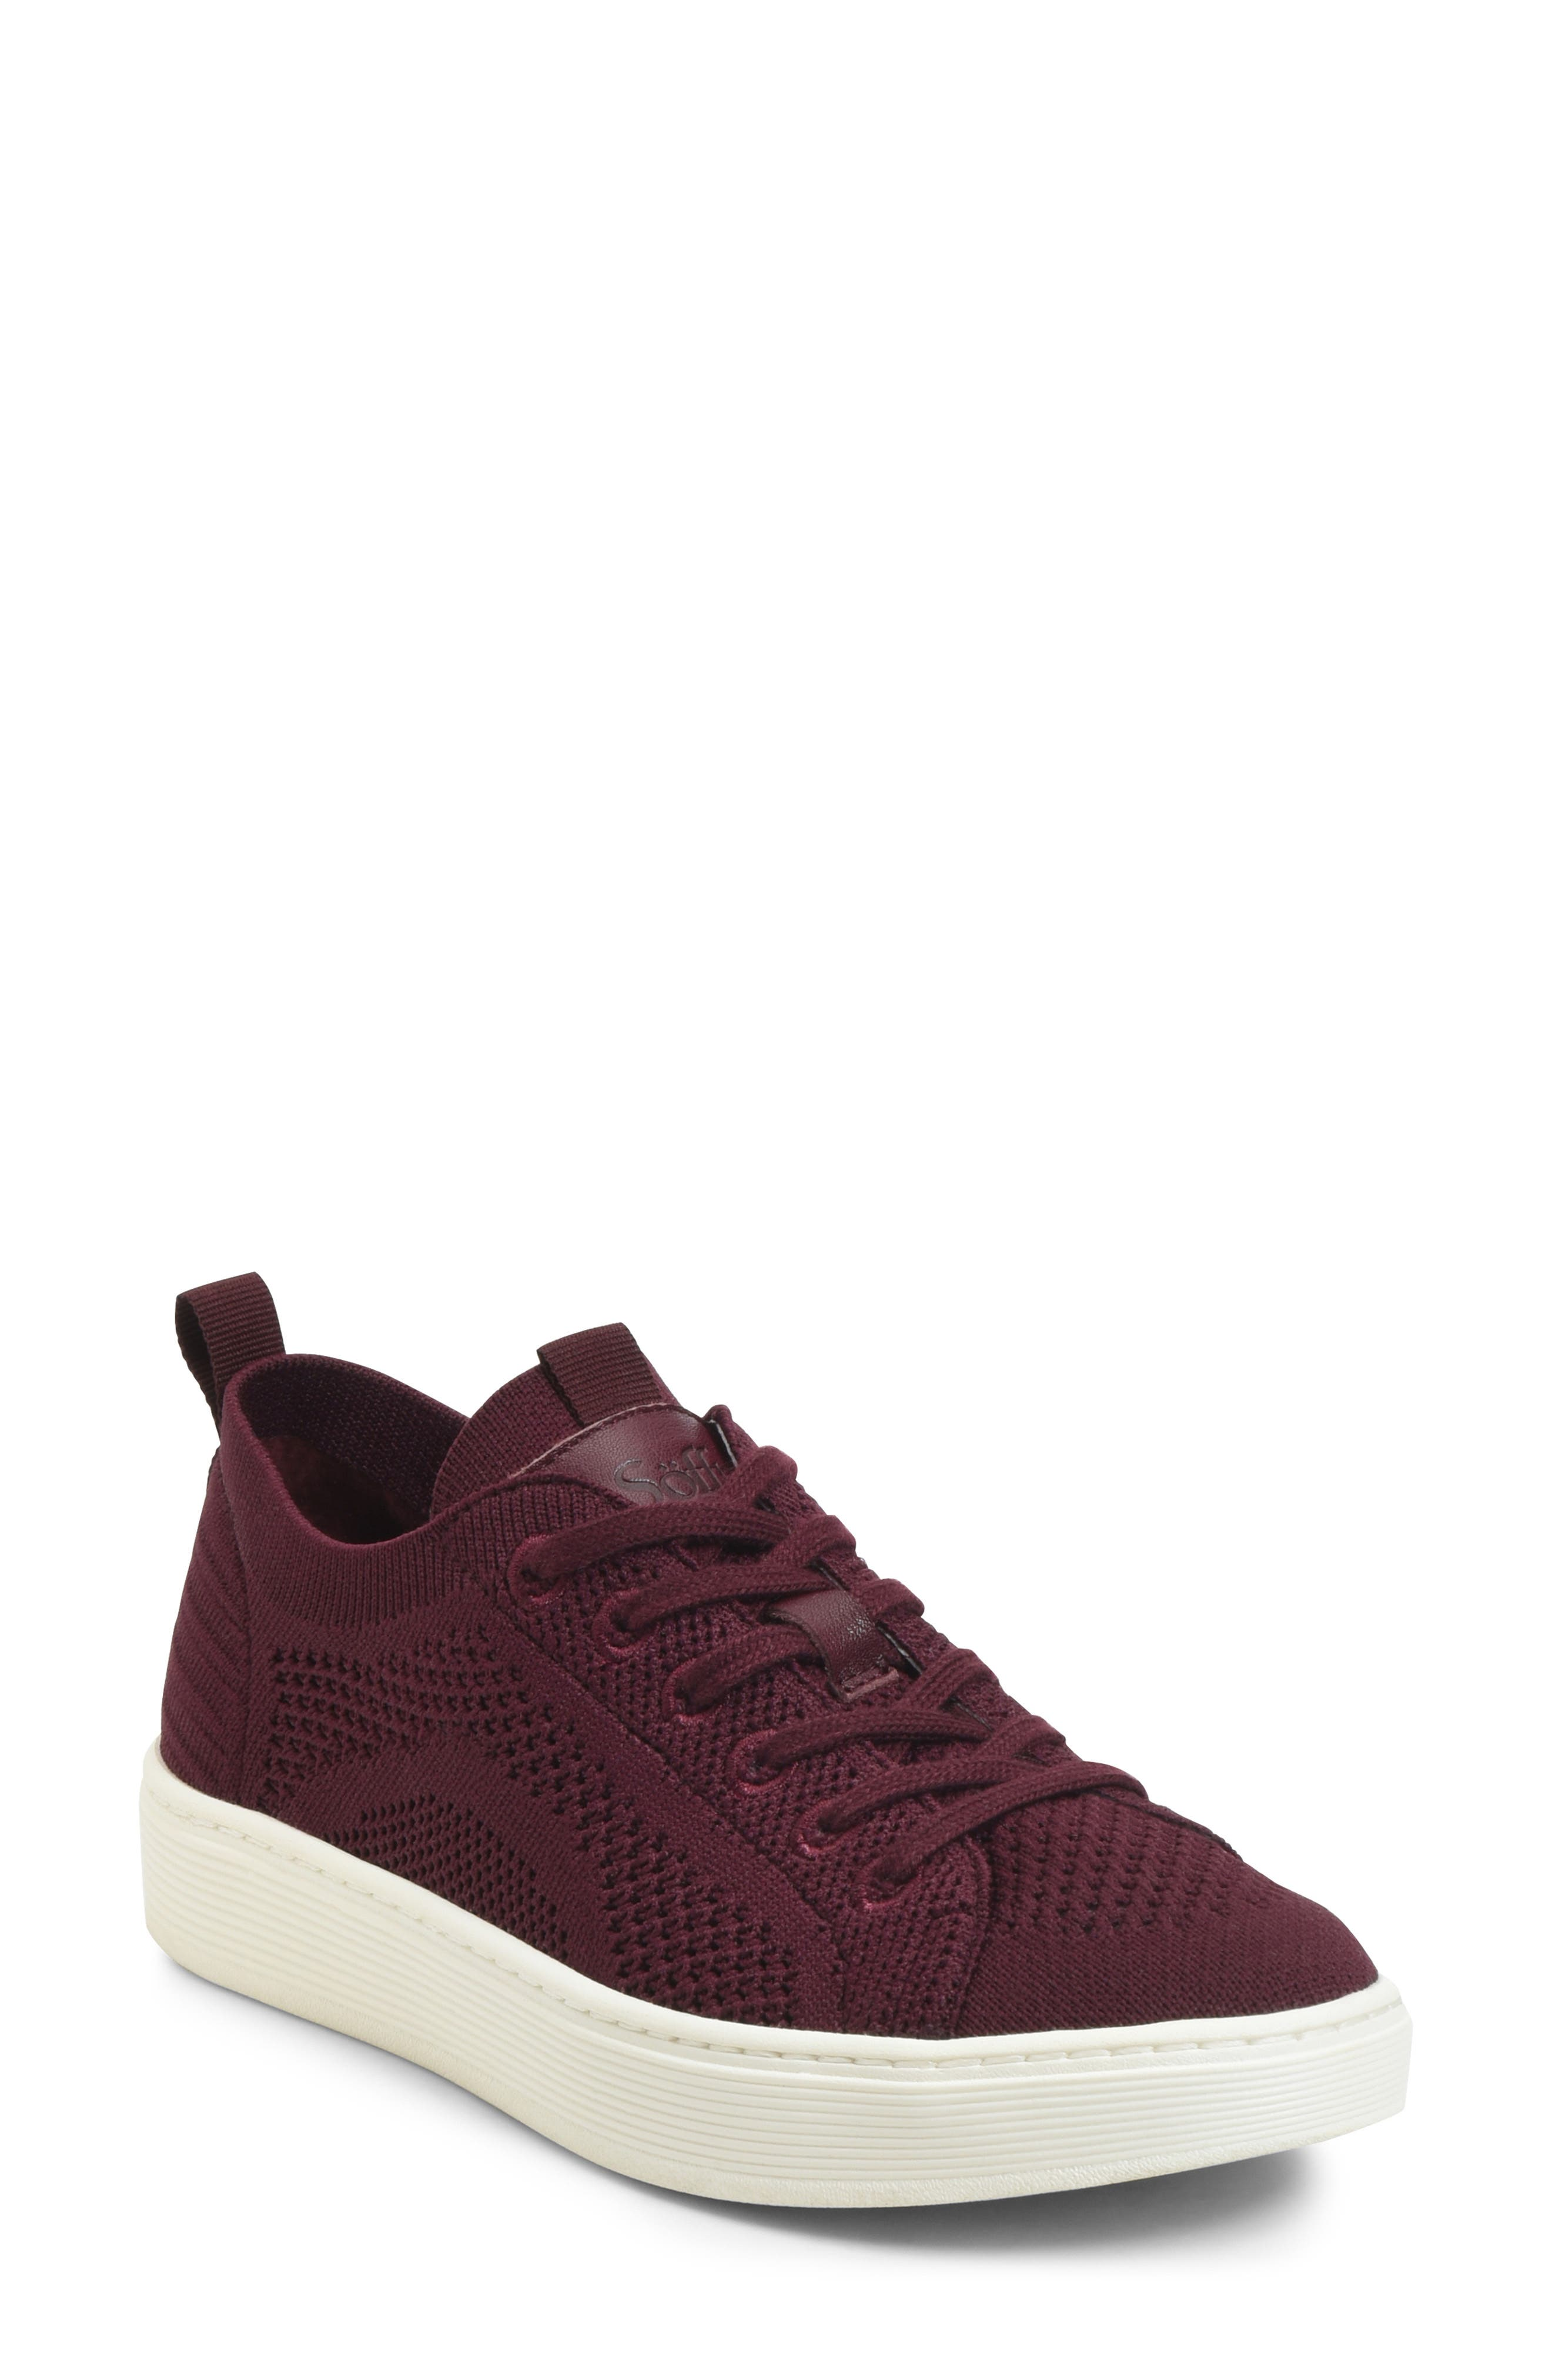 Sofft Somers Knit Sneaker, Burgundy